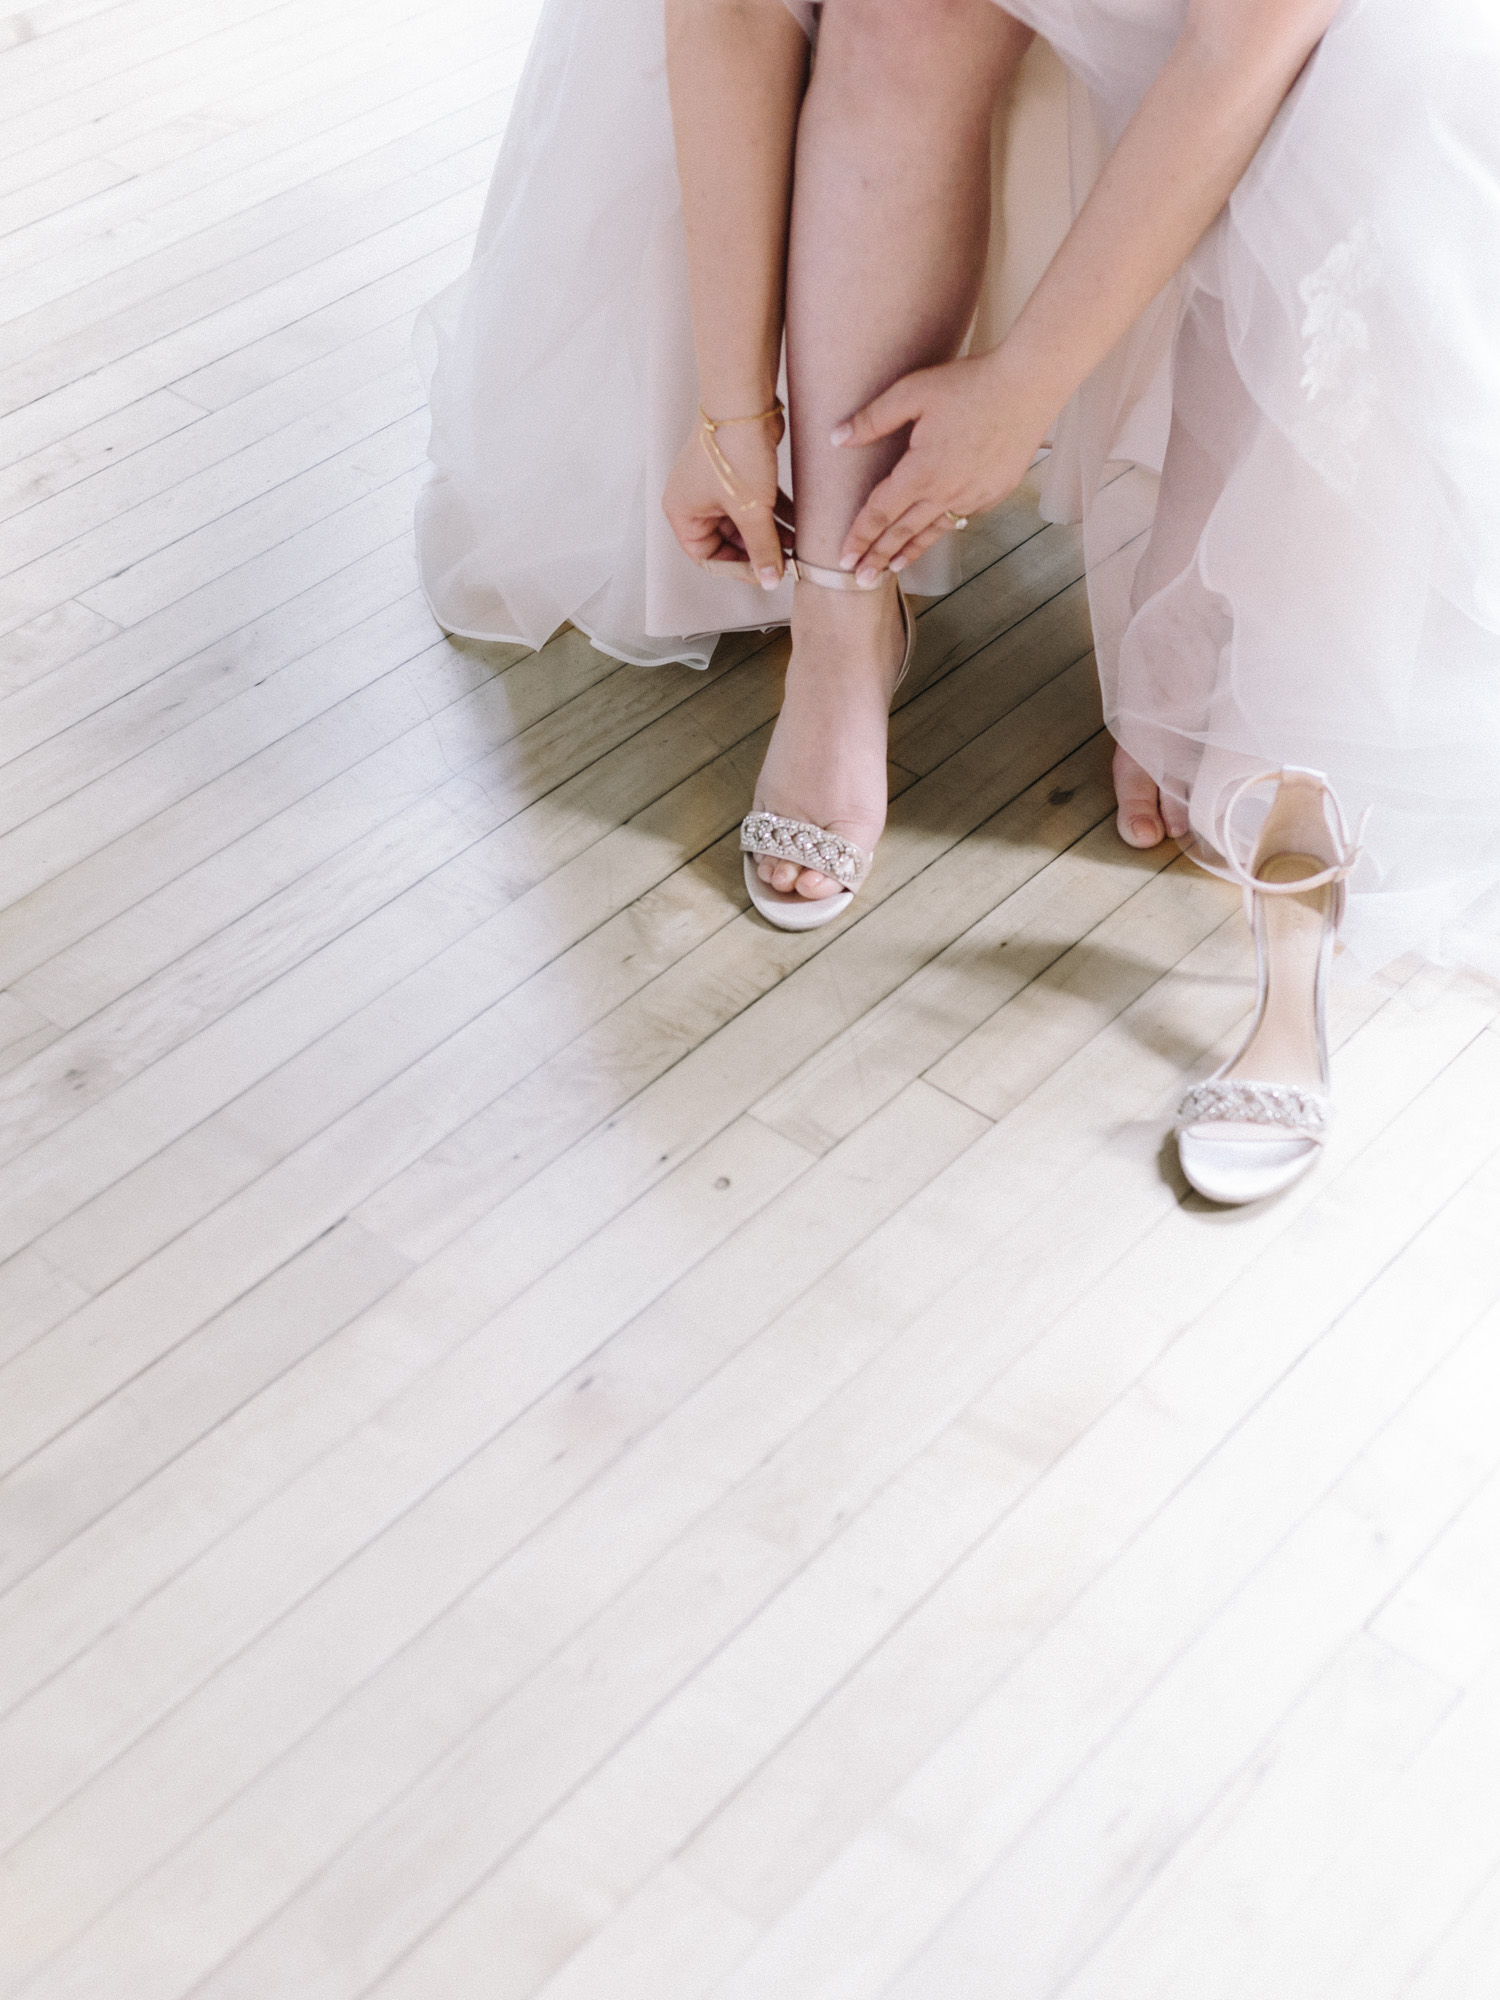 A bride fastens her sparkly wedding shoes on a wood floor